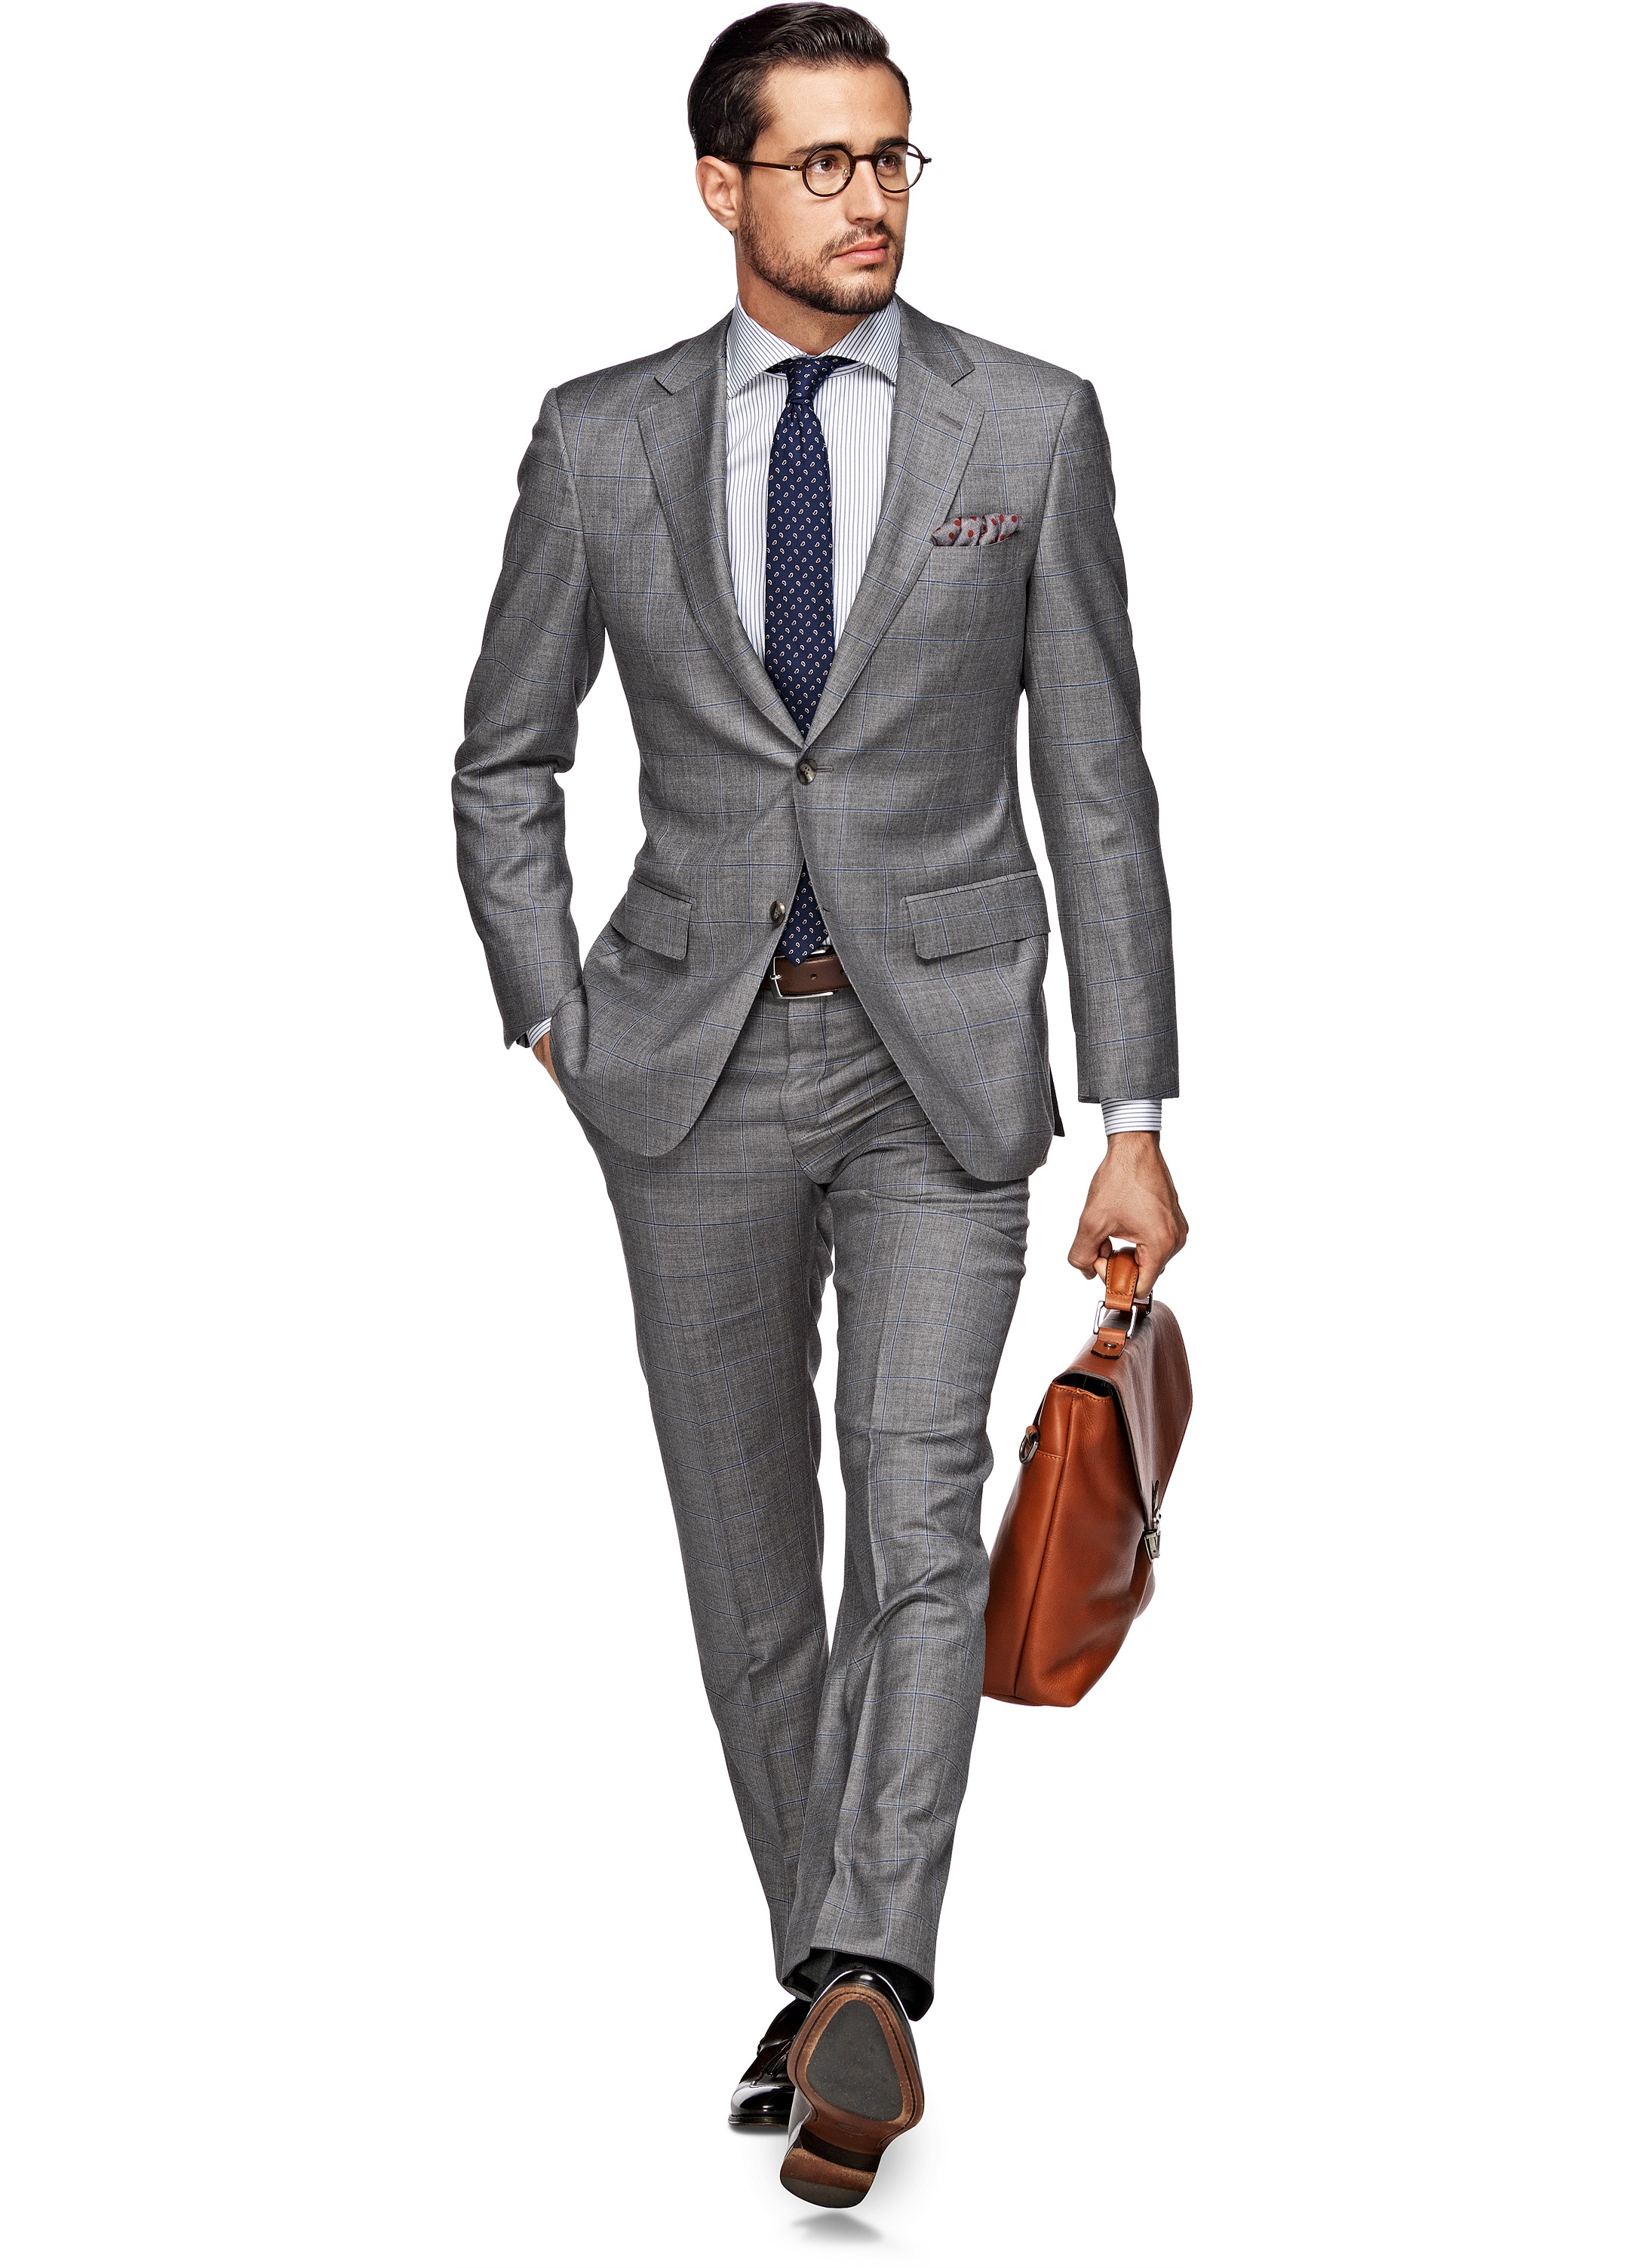 What Color Suit Should A Man Wear If He Has Gray - Light Colored - White - Hair | Men's Style Advice Want More Men Style Advice Videos - Subscribe to RMRS YouTube Channel Click this link to visit an article dedicated to mens suit colors. RAW Transcript What Color Suit Should A Man Wear If He.